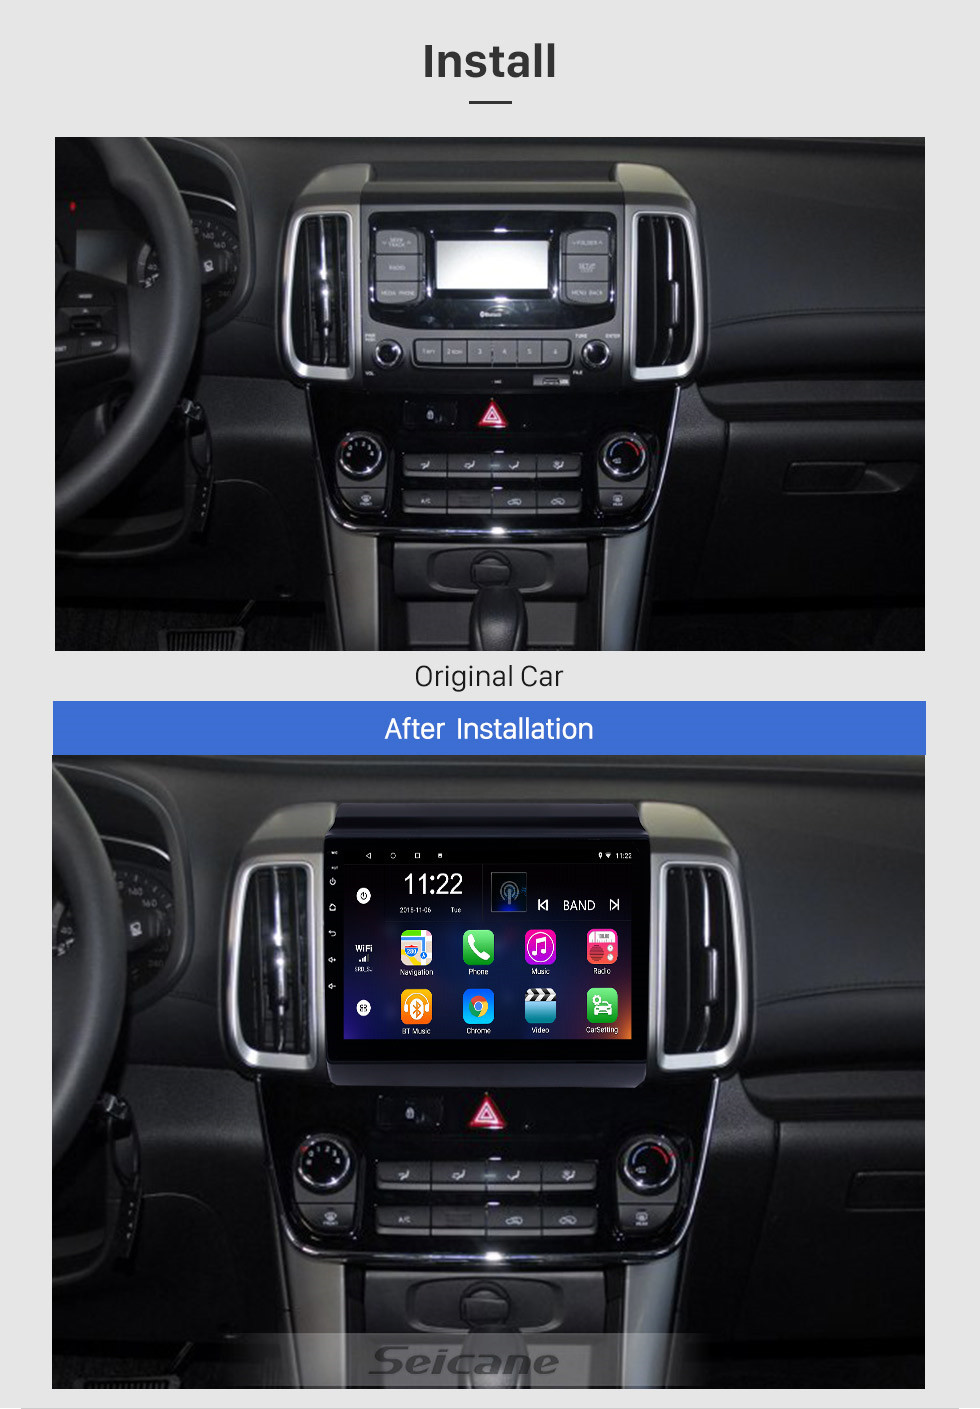 Seicane Android 10.0 9 inch Touchscreen GPS Navigation Radio for 2018-2019 Hyundai ix35 with Bluetooth USB WIFI AUX support Rear camera Carplay SWC TPMS